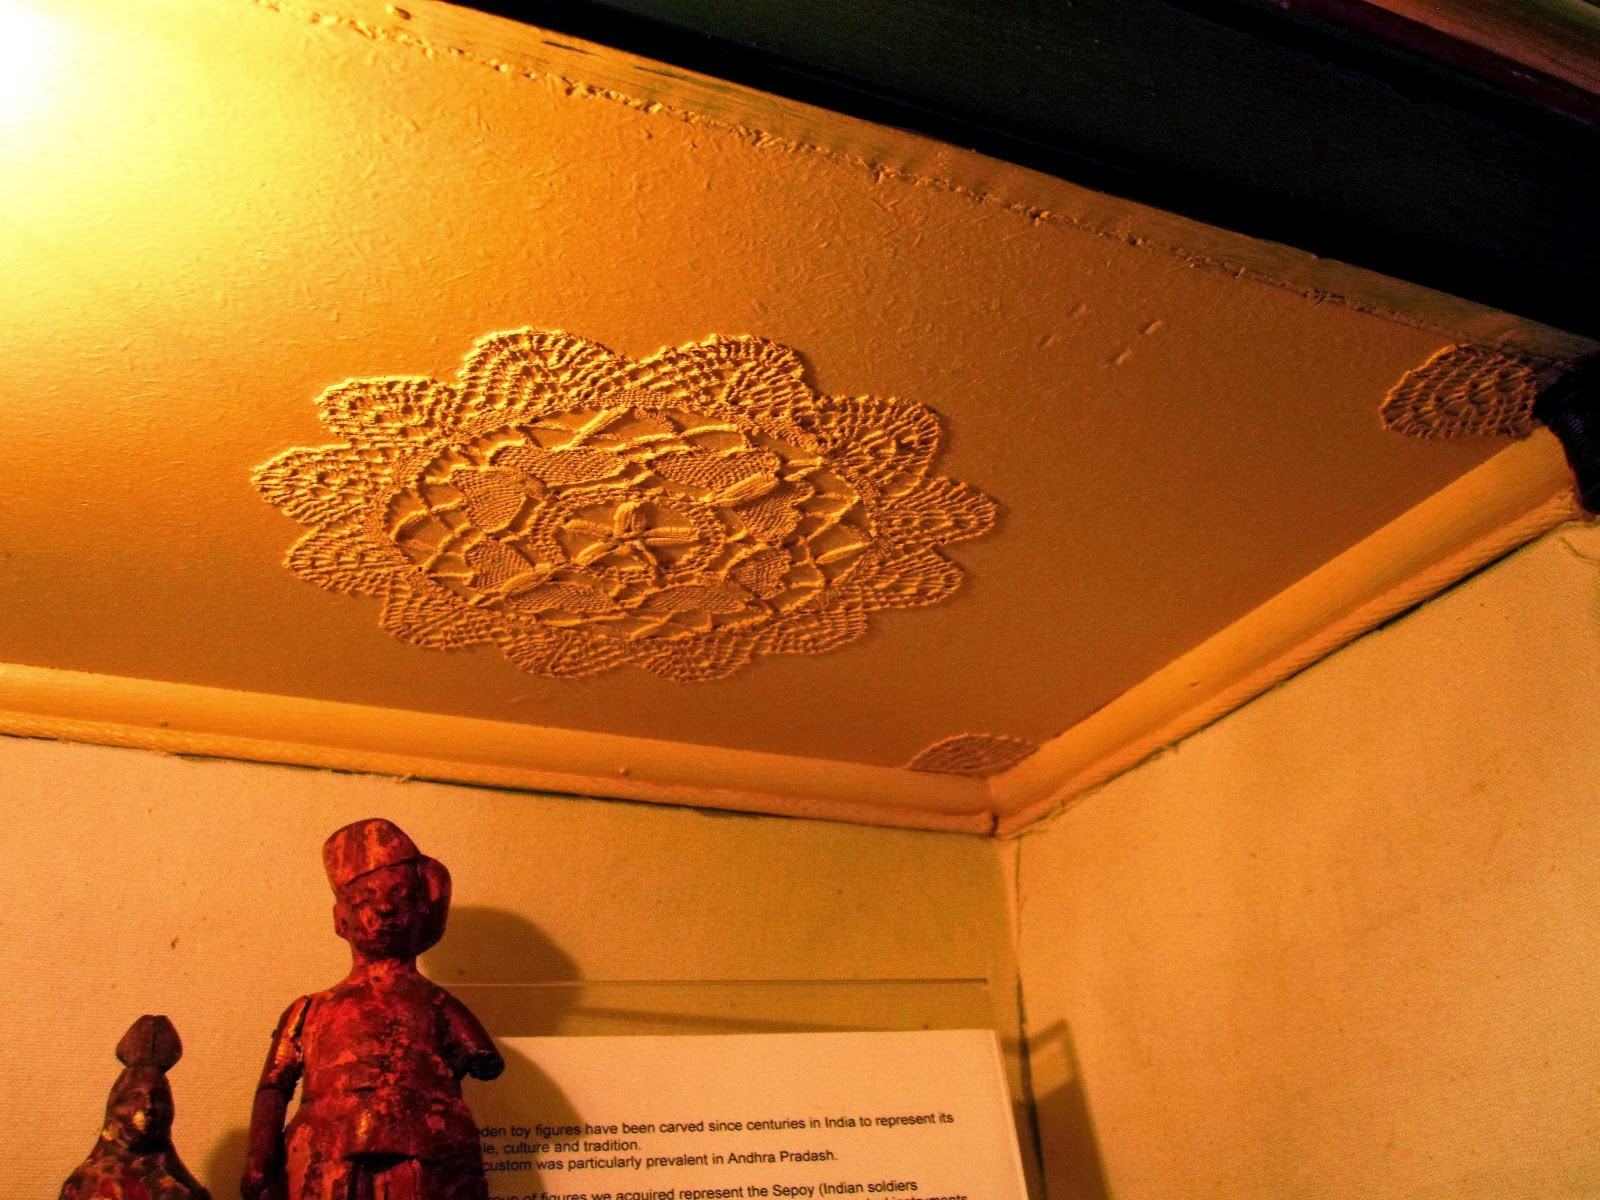 Ceiling of a room in the dolls house display cabinet, showing doileys stuck to it to replicate plaster moldings